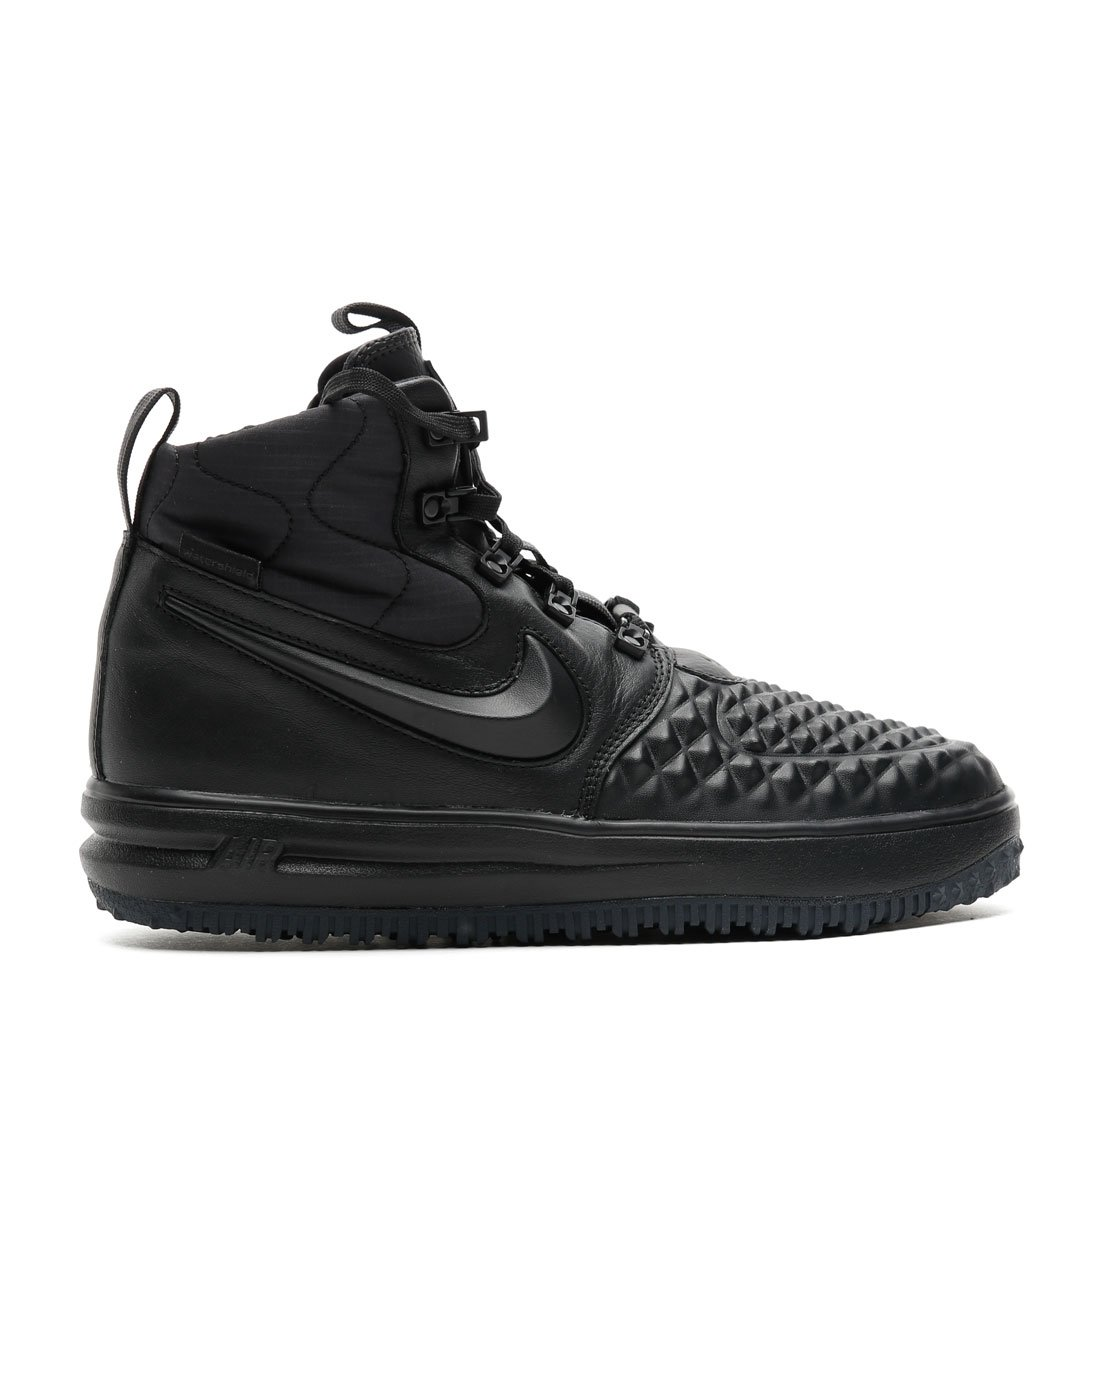 Nike Kid's LF1 Duckboot 17 GS, Black/Black-Anthracite, Youth Size 4 by Nike (Image #1)